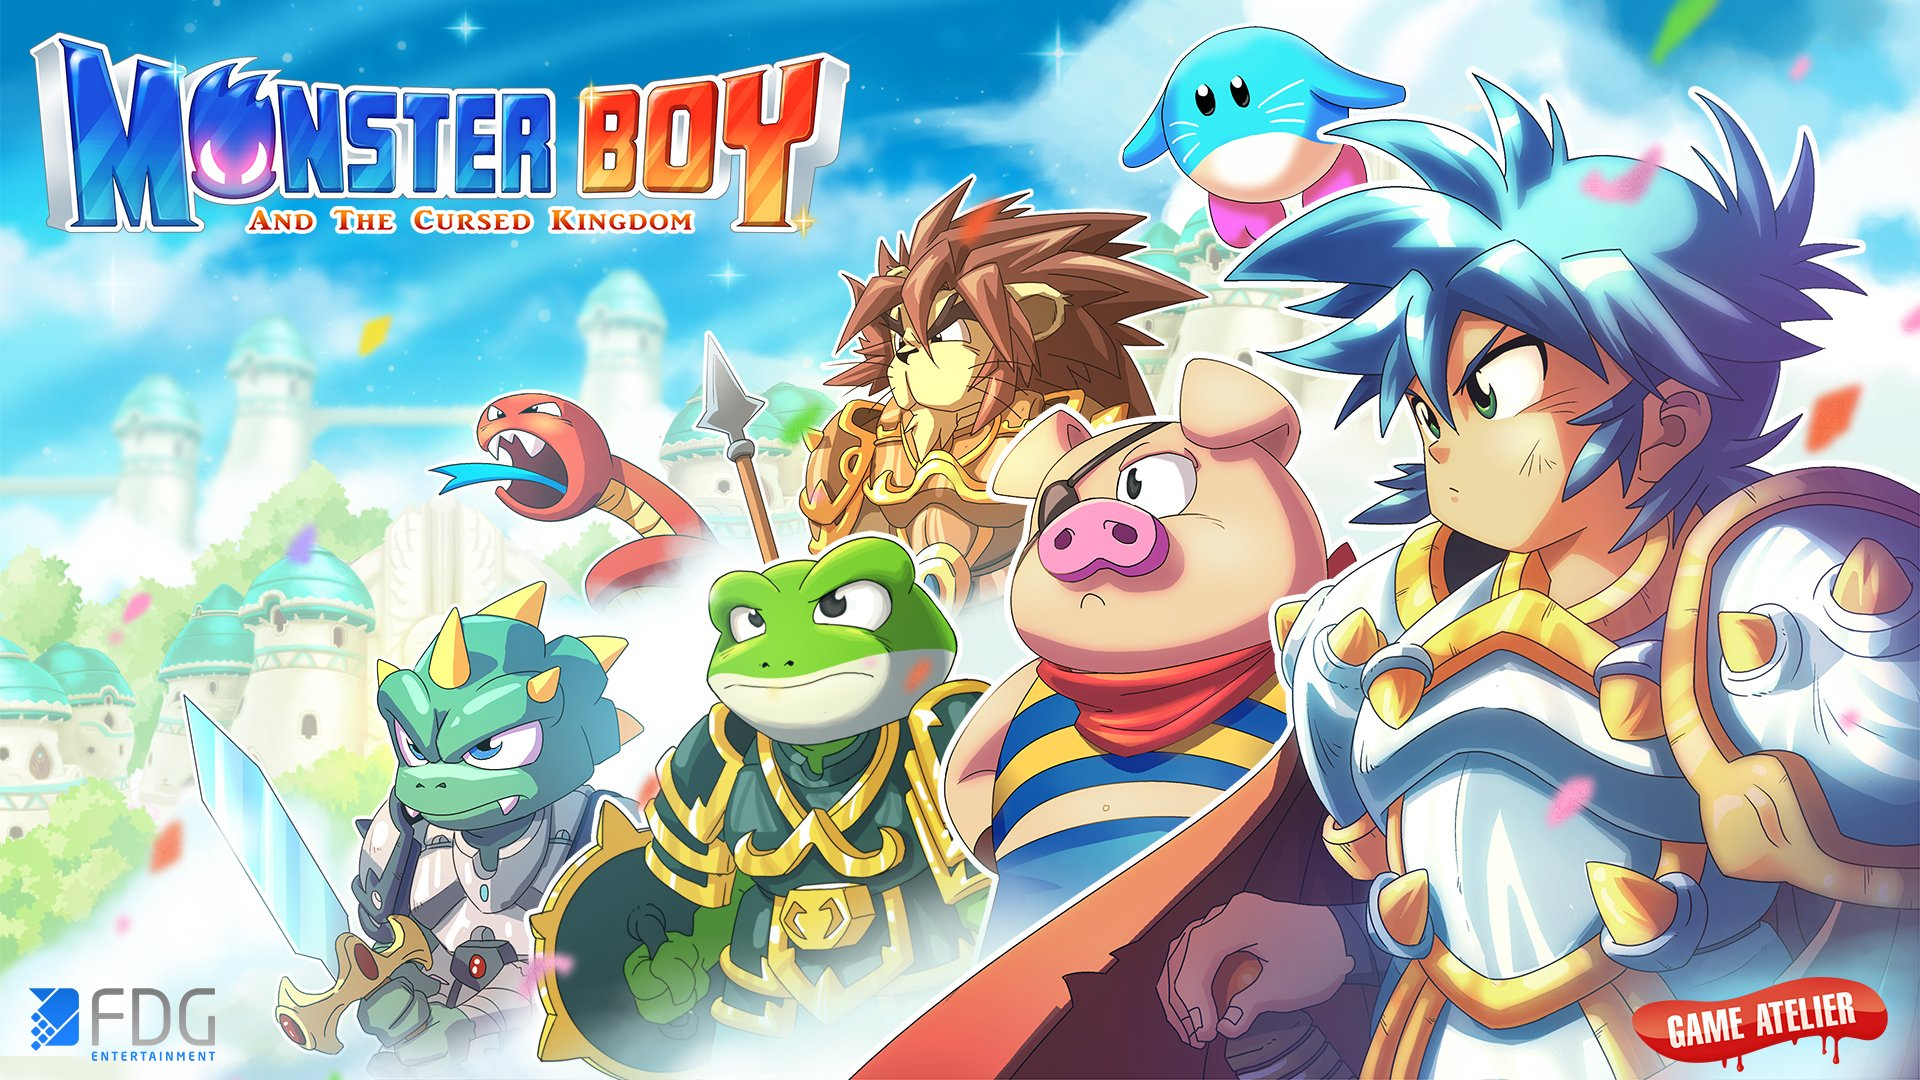 copertina del gioco Monster Boy per Nintendo Switch